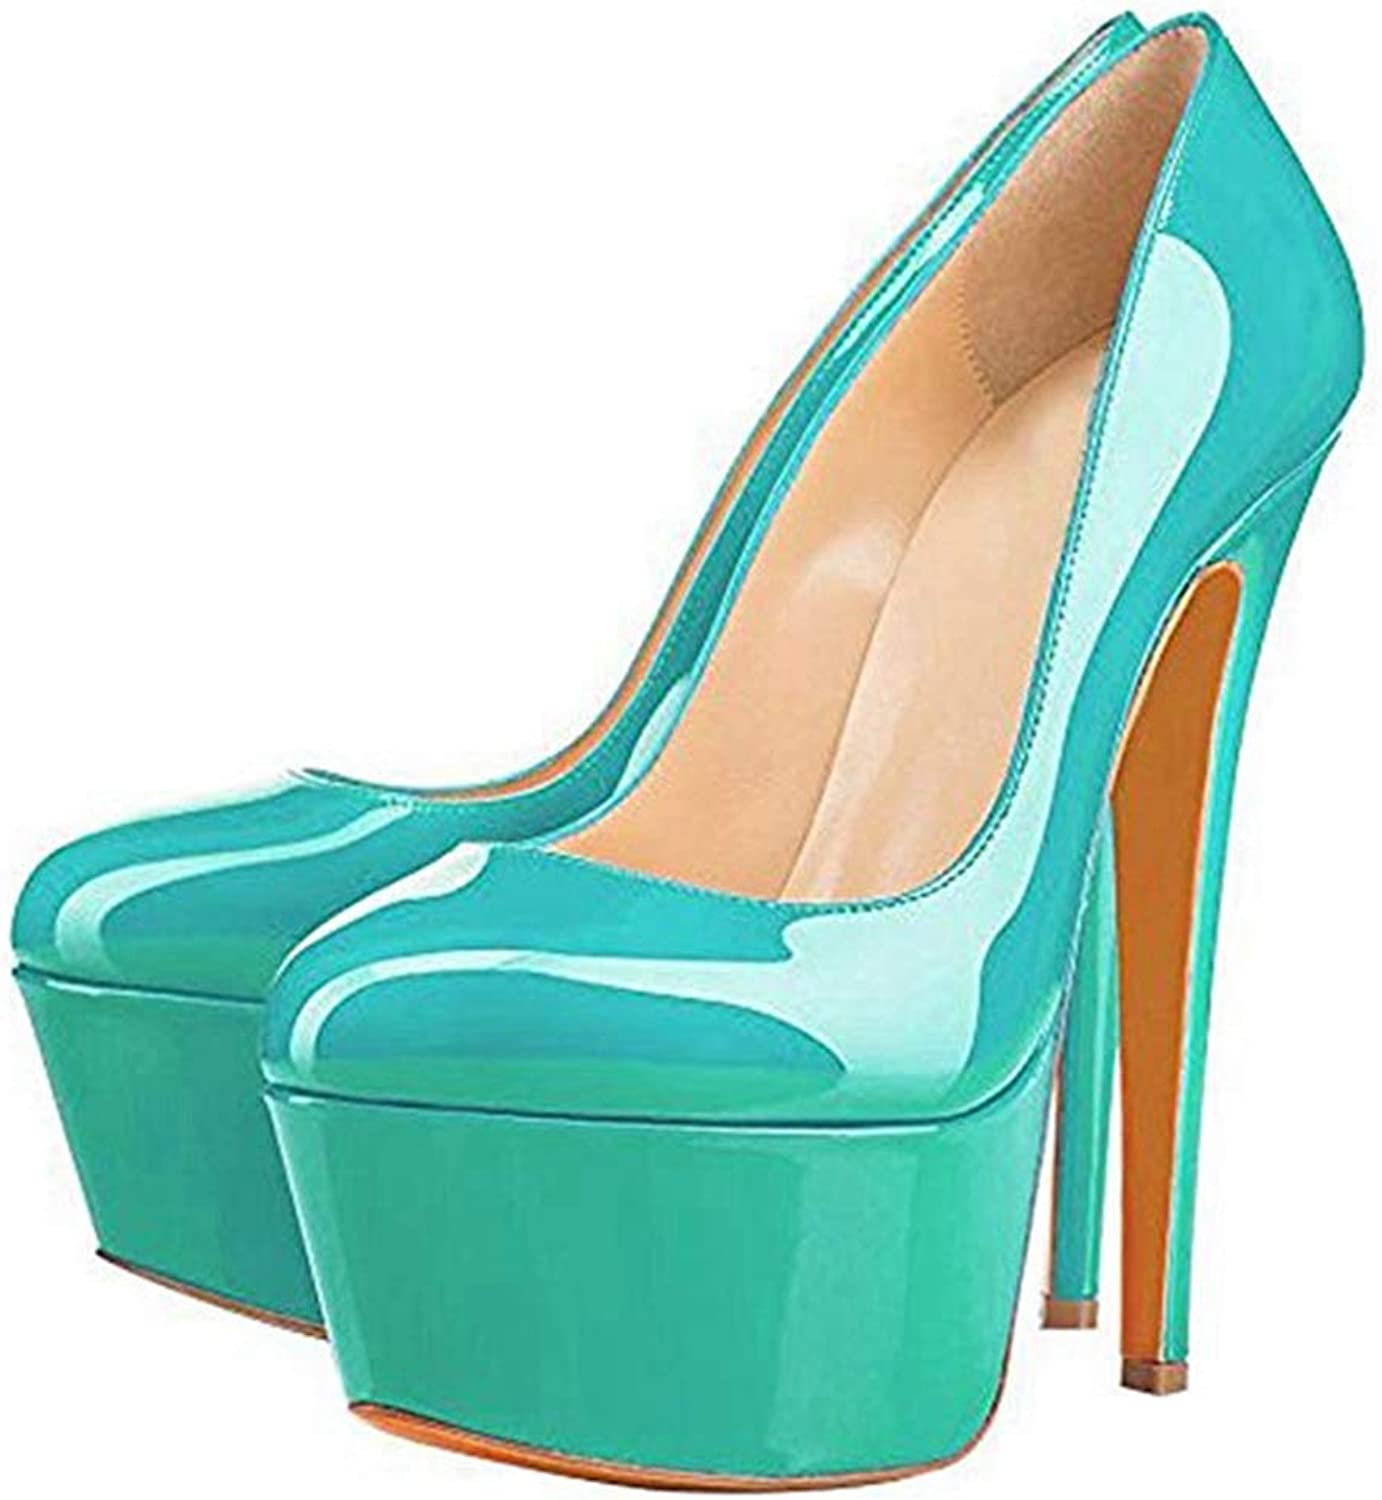 Heeled Sandal for Women Green Stiletto Pump Ladies Classic Party Wedding High Heel shoes